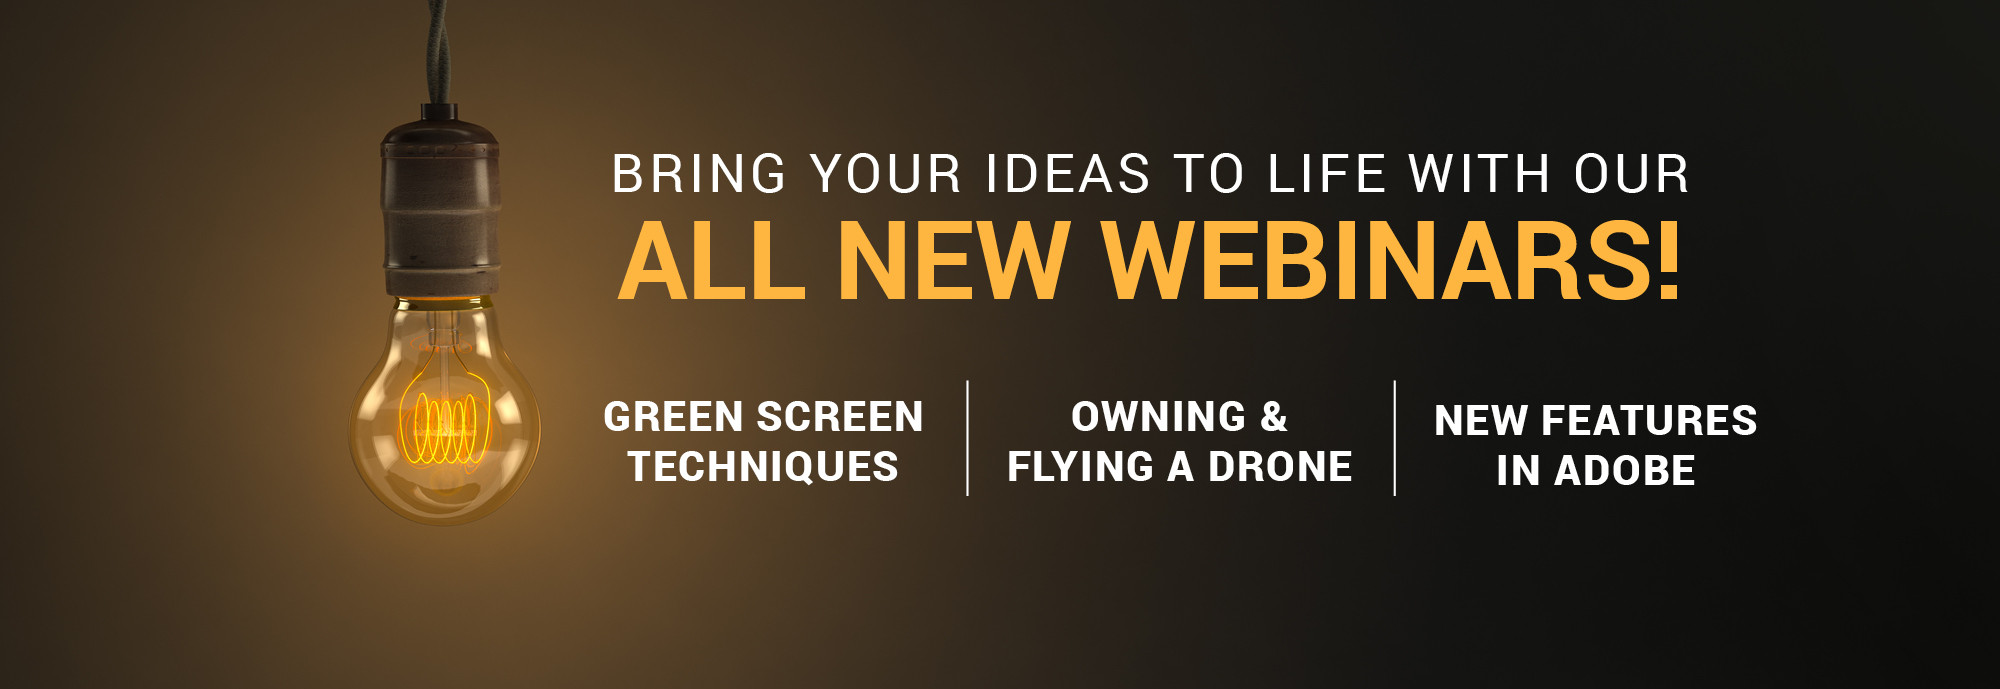 All New Webinars!